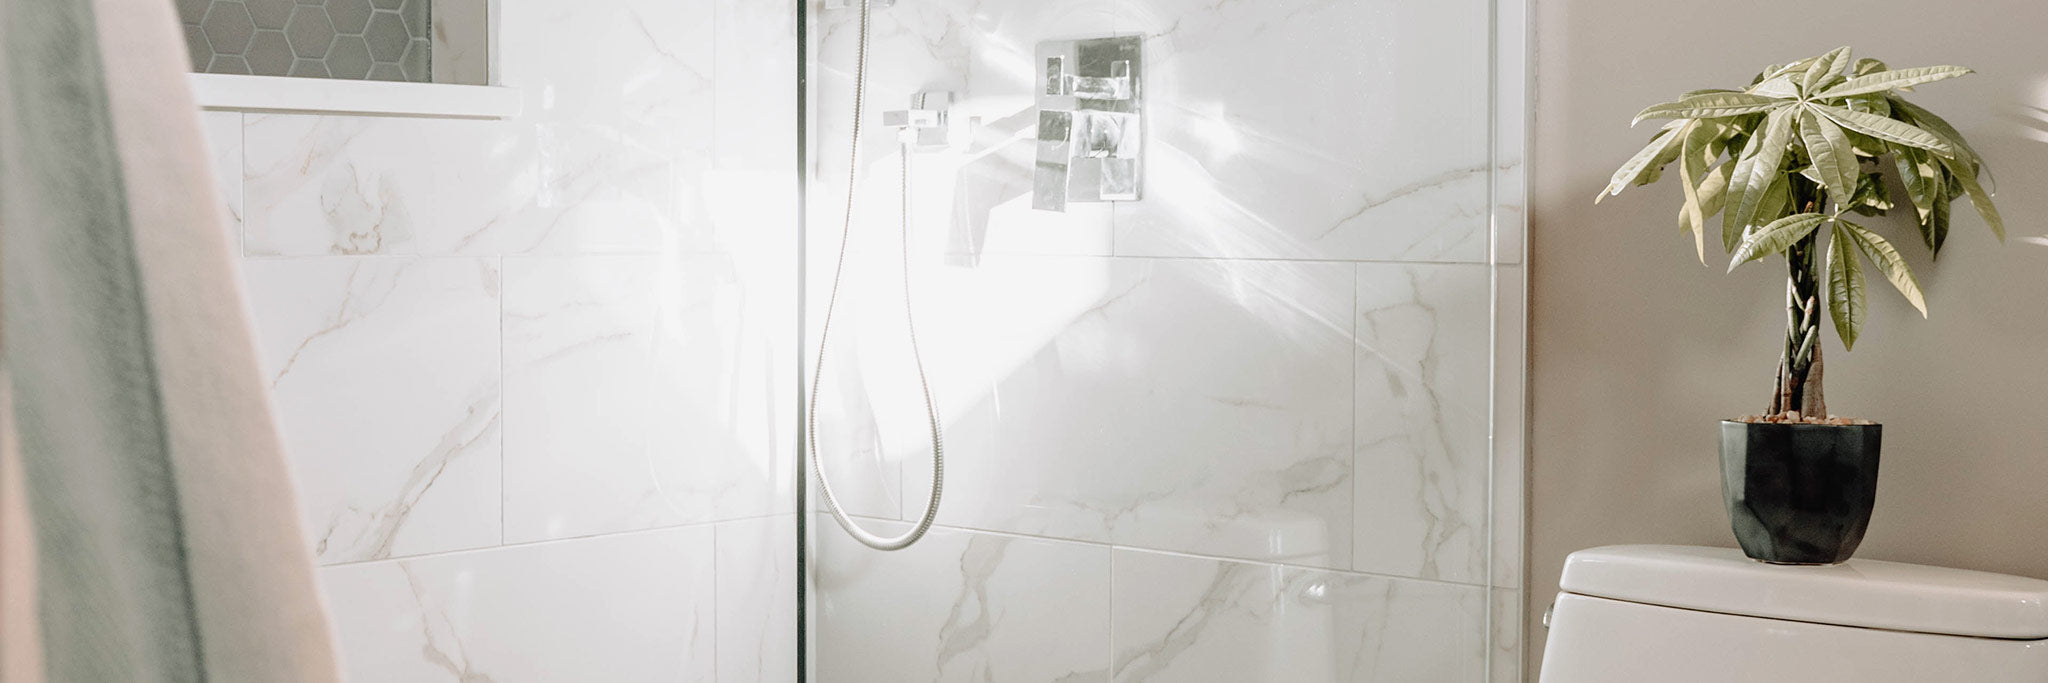 Clean marble tiles in a well-light bathroom